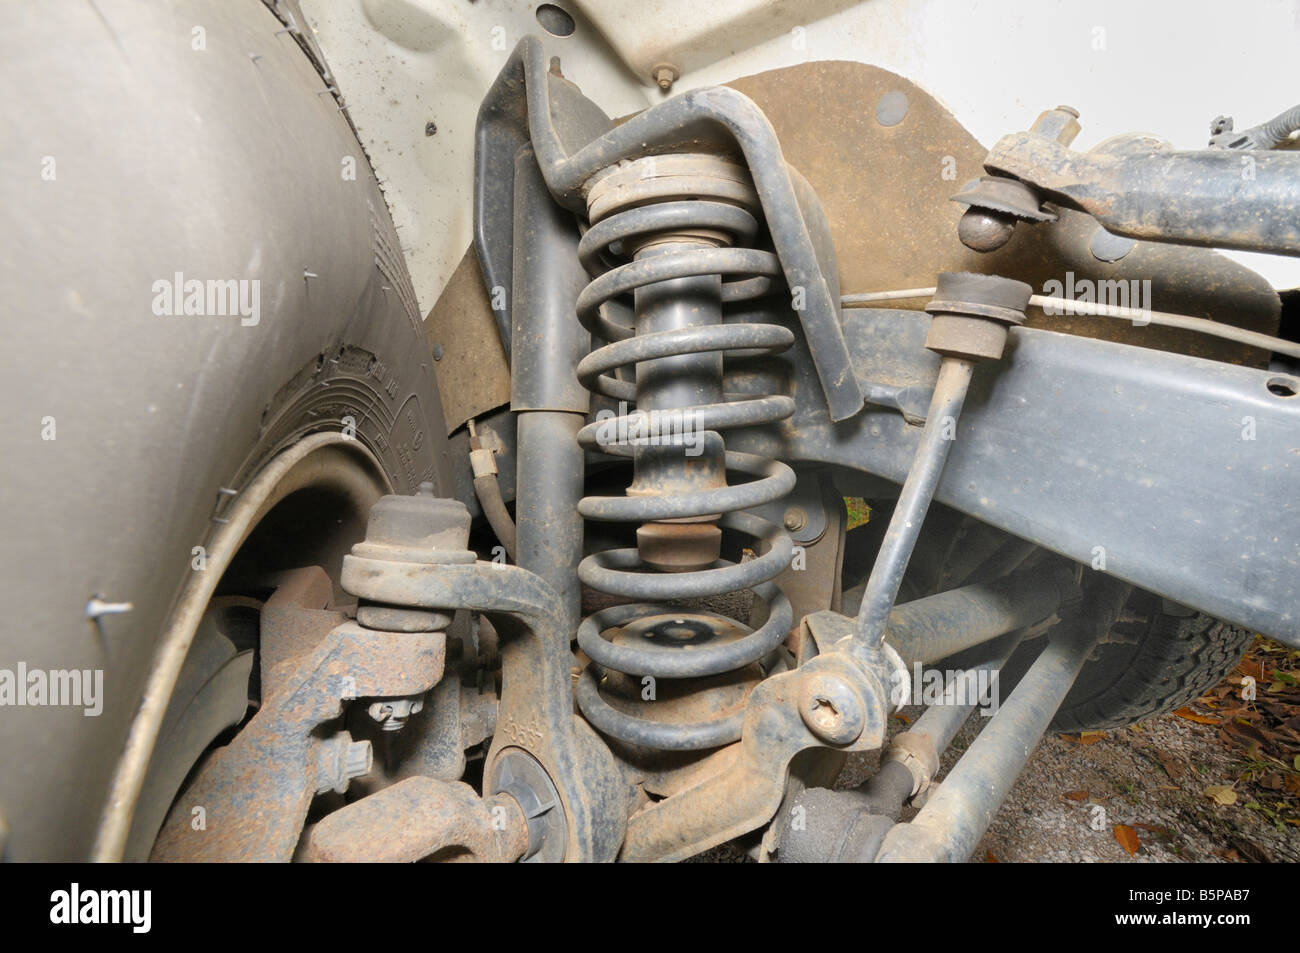 Jeep Wrangler Coil Spring Assembly Photo By Darrell Young Stock Pack